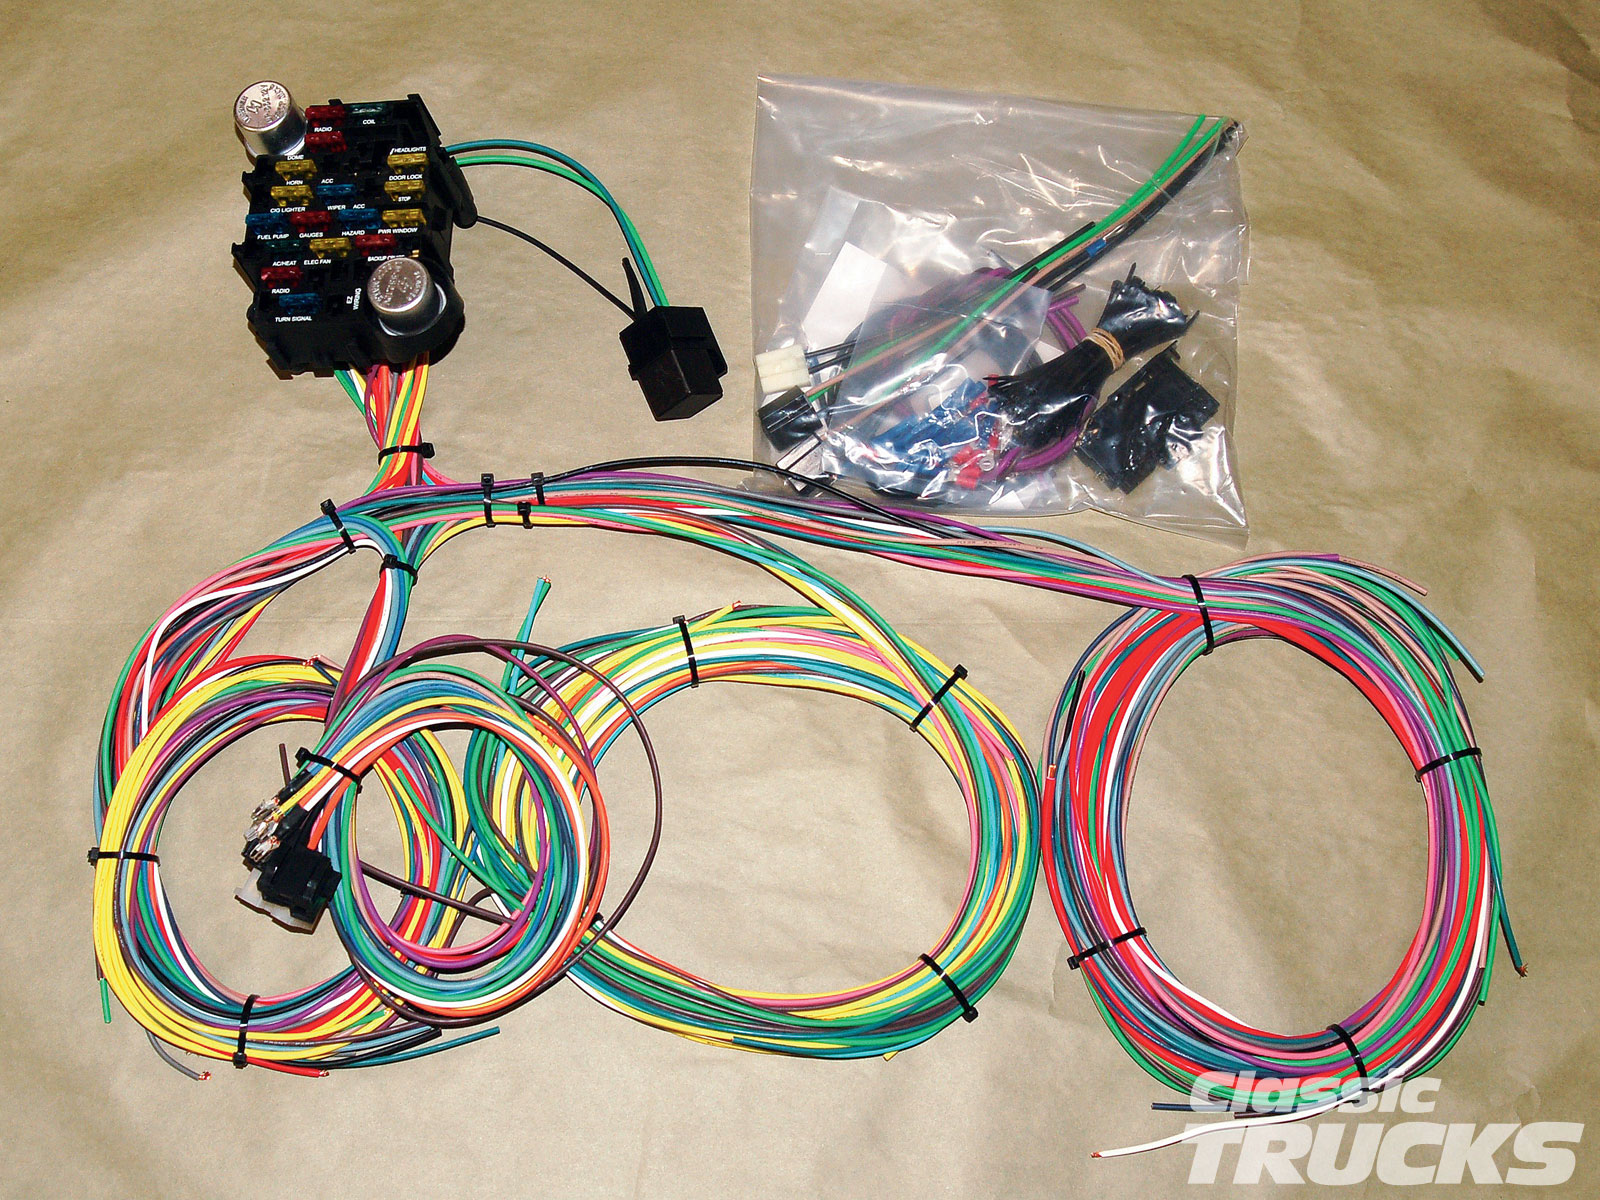 1010clt 02 o aftermarket wiring harness install kit?resize\\\=665%2C499 painless wiring harness australia tamahuproject org universal wiring harness australia at gsmportal.co